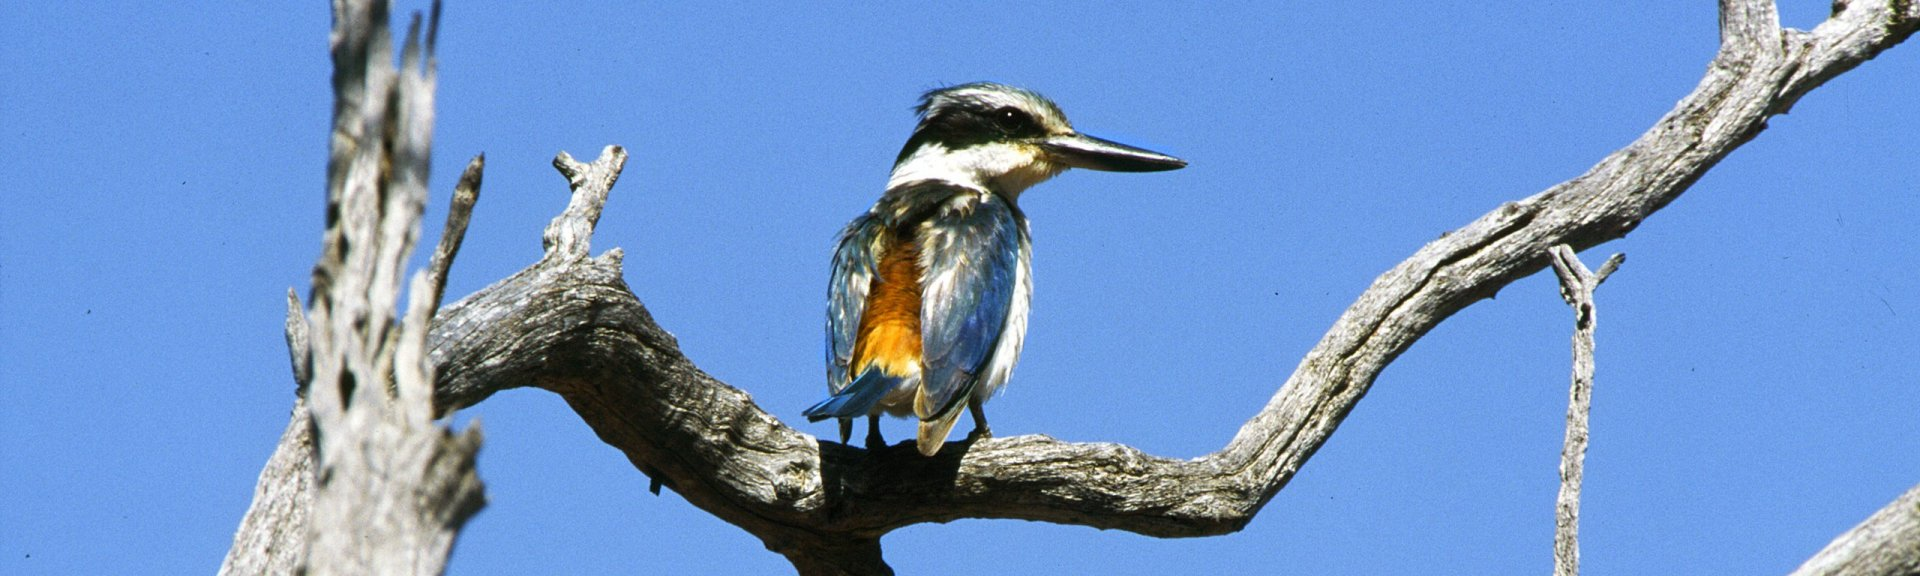 Red-backed kingfisher. Photo: Brian Furby